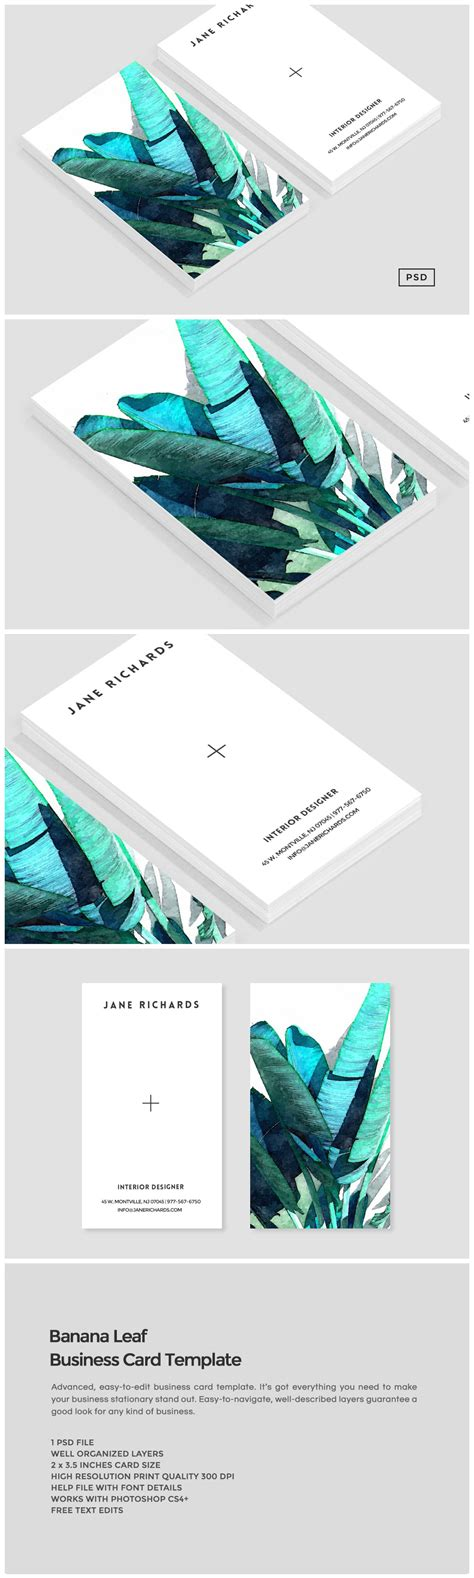 Banana Leaf Business Card Template Business Card Templates On Creative Market Leaf Business Card Template